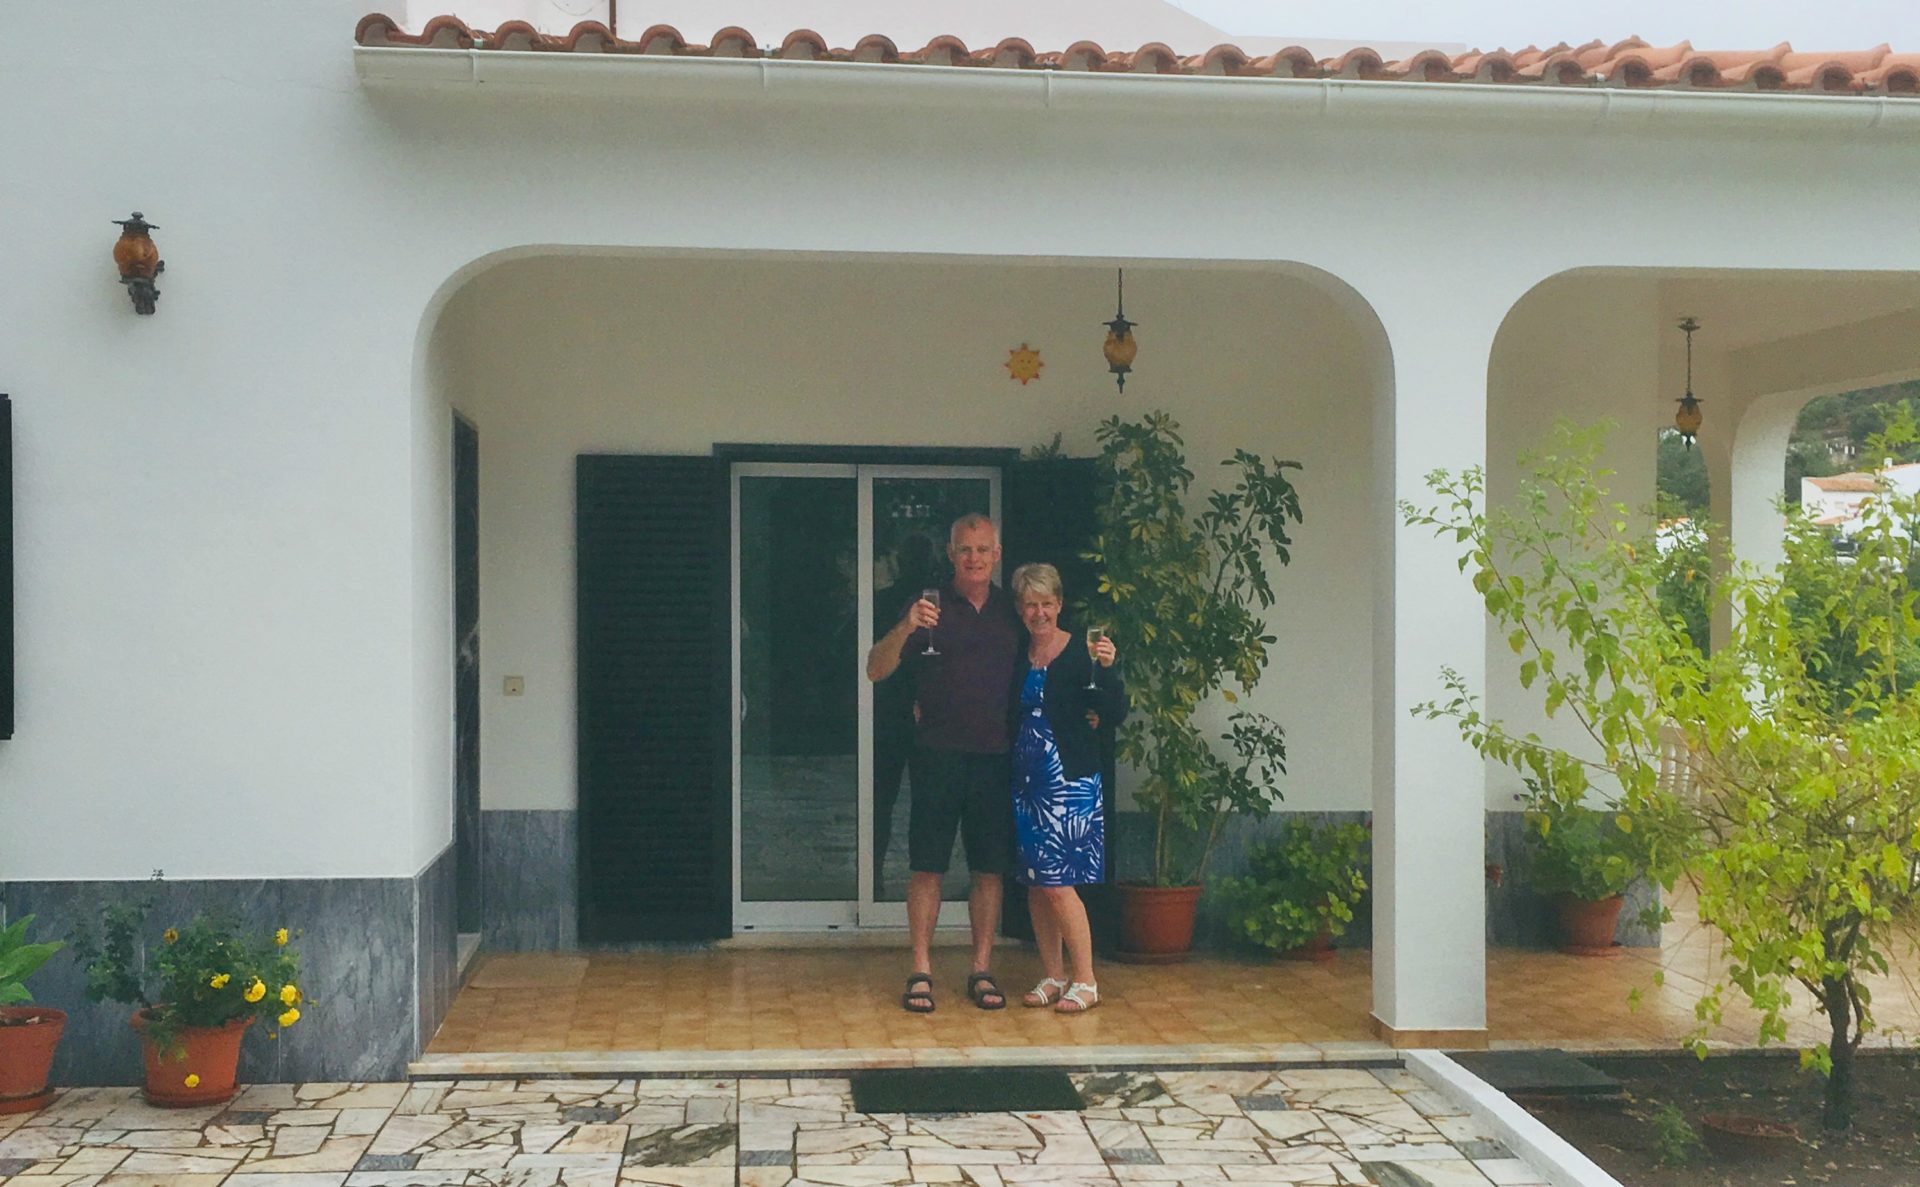 Helen and David have bought a beautiful home in the village of Alportel, Portugal, after meeting Abigail from IAD at Your Overseas Home.